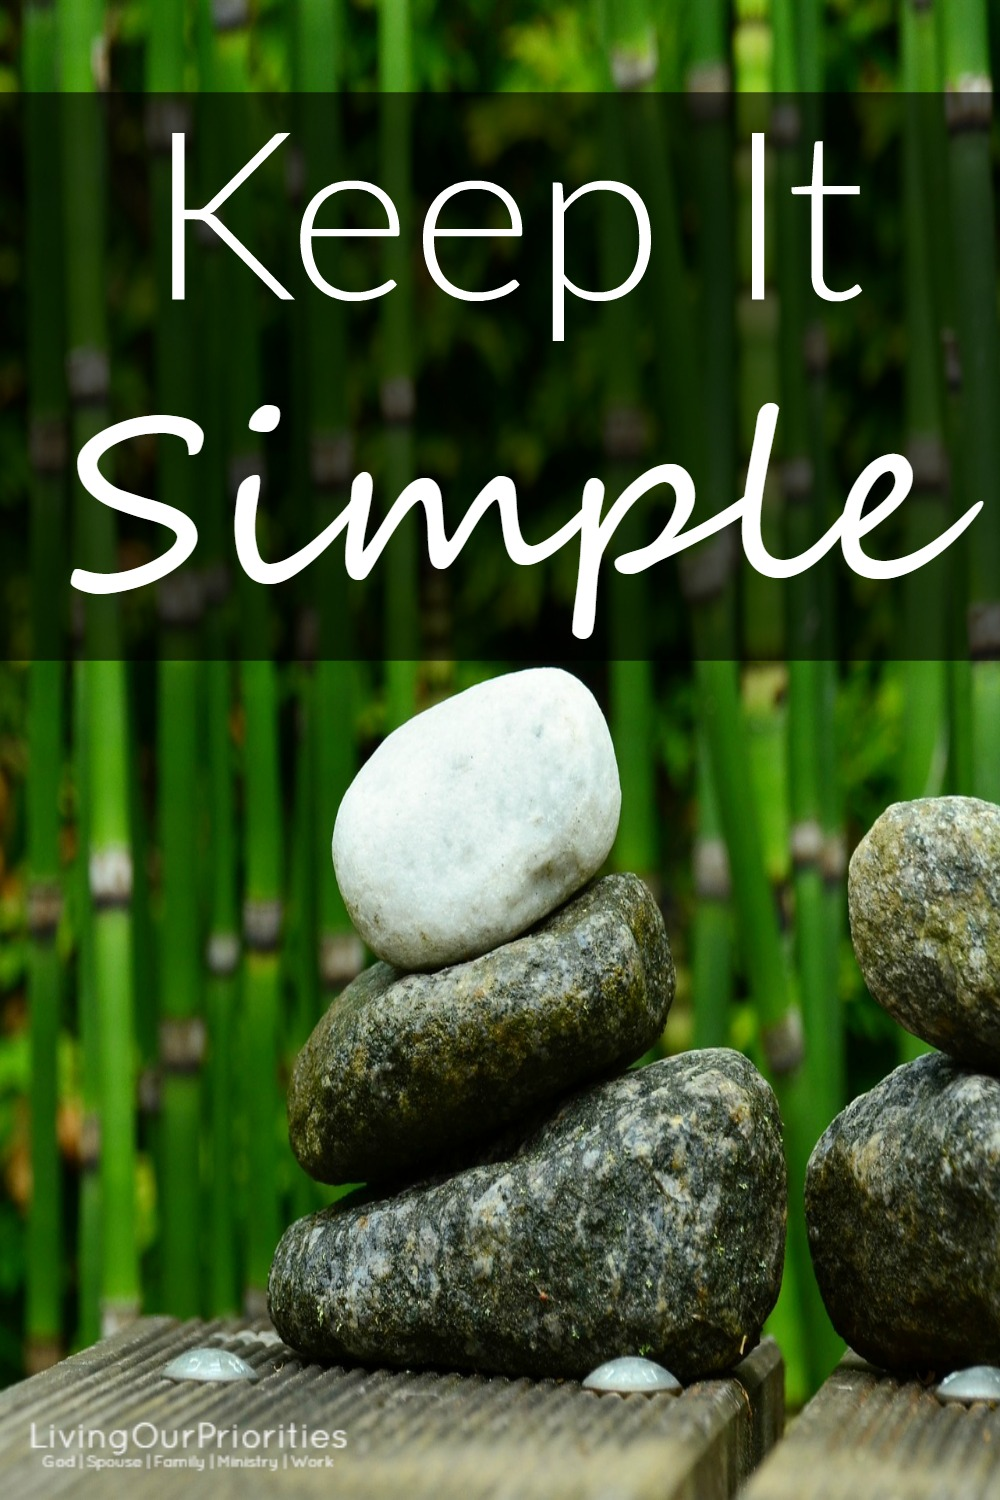 Life in itself can weigh us down. But there is hope, we can choose to keep it simple!